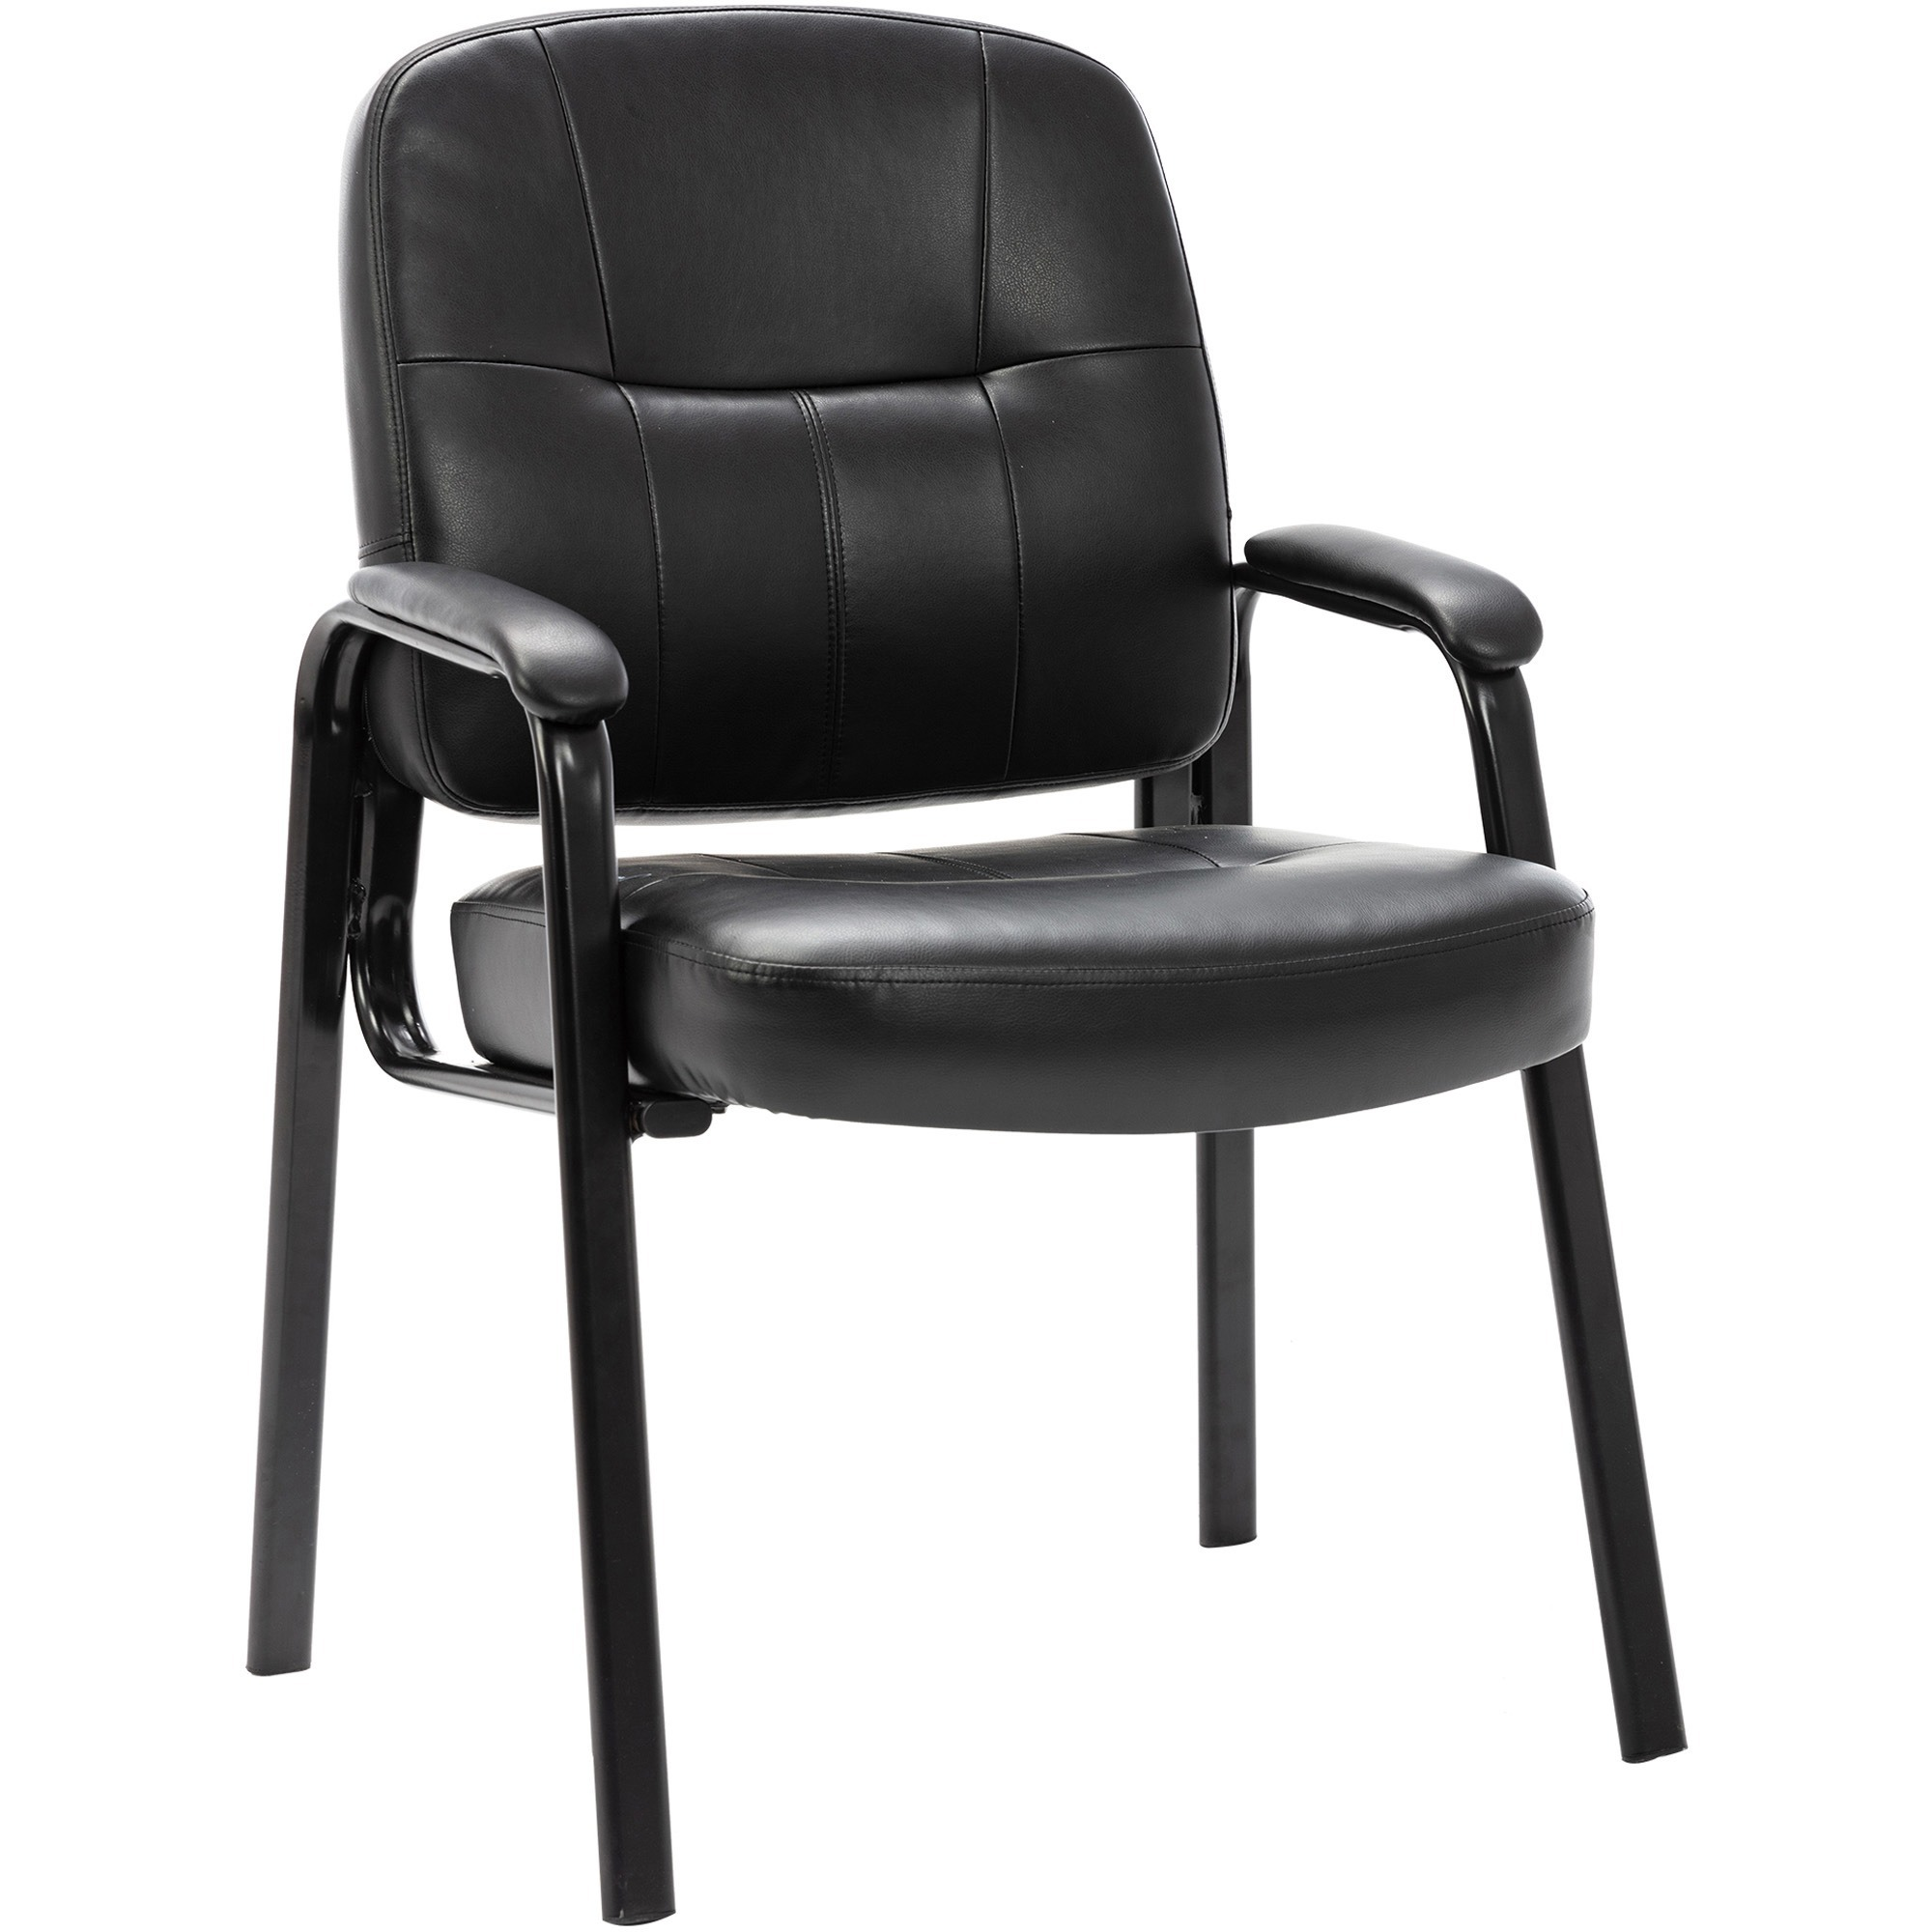 West Coast Office Supplies  Furniture  Chairs Chair